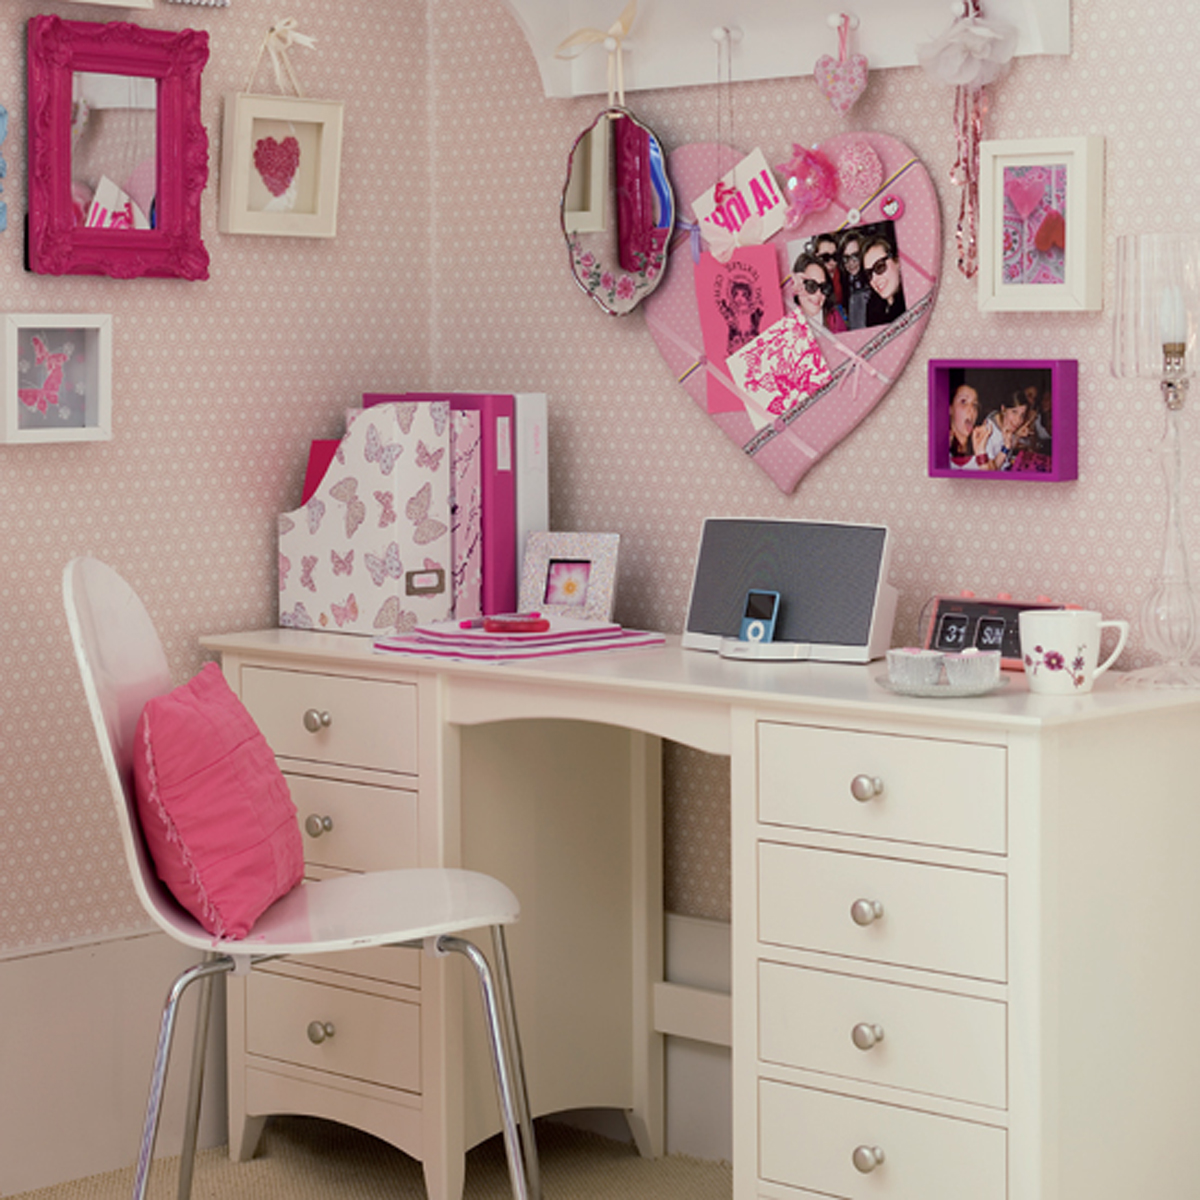 Study Room Designs For Teenagers: Romantic Study Desk Inspirations